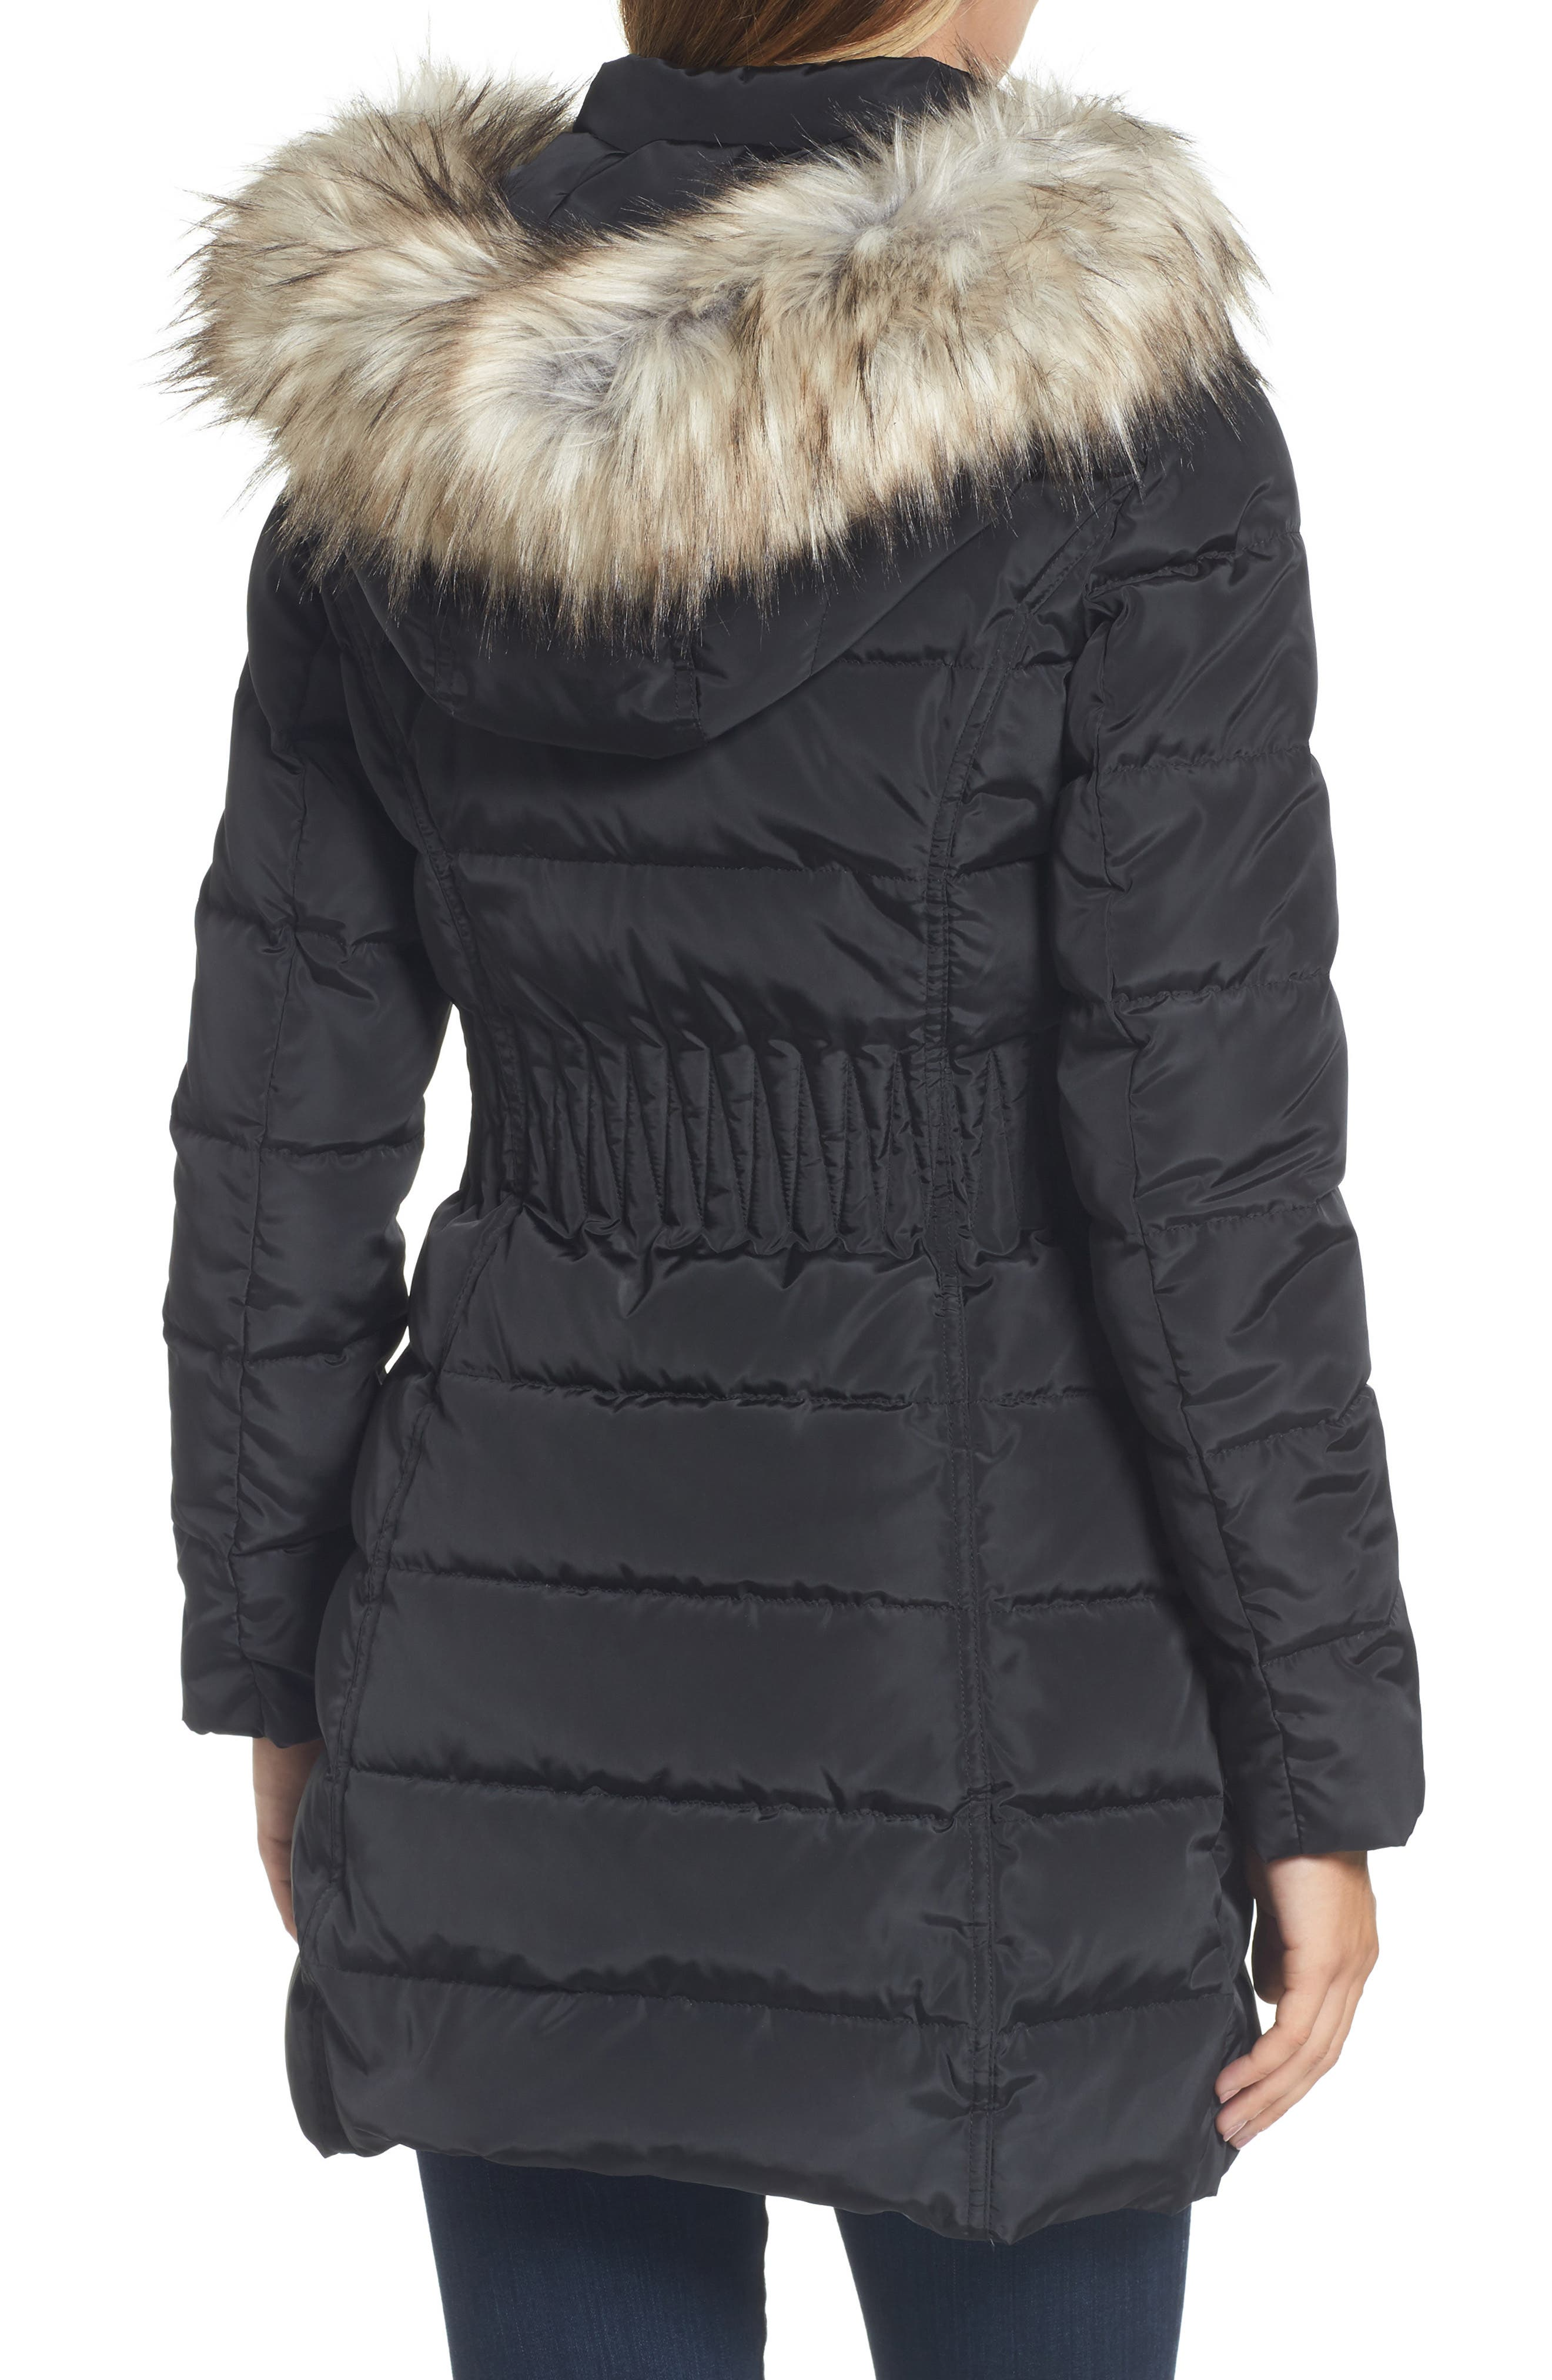 Hooded Quilted Jacket with Faux Fur Trim,                             Alternate thumbnail 2, color,                             001